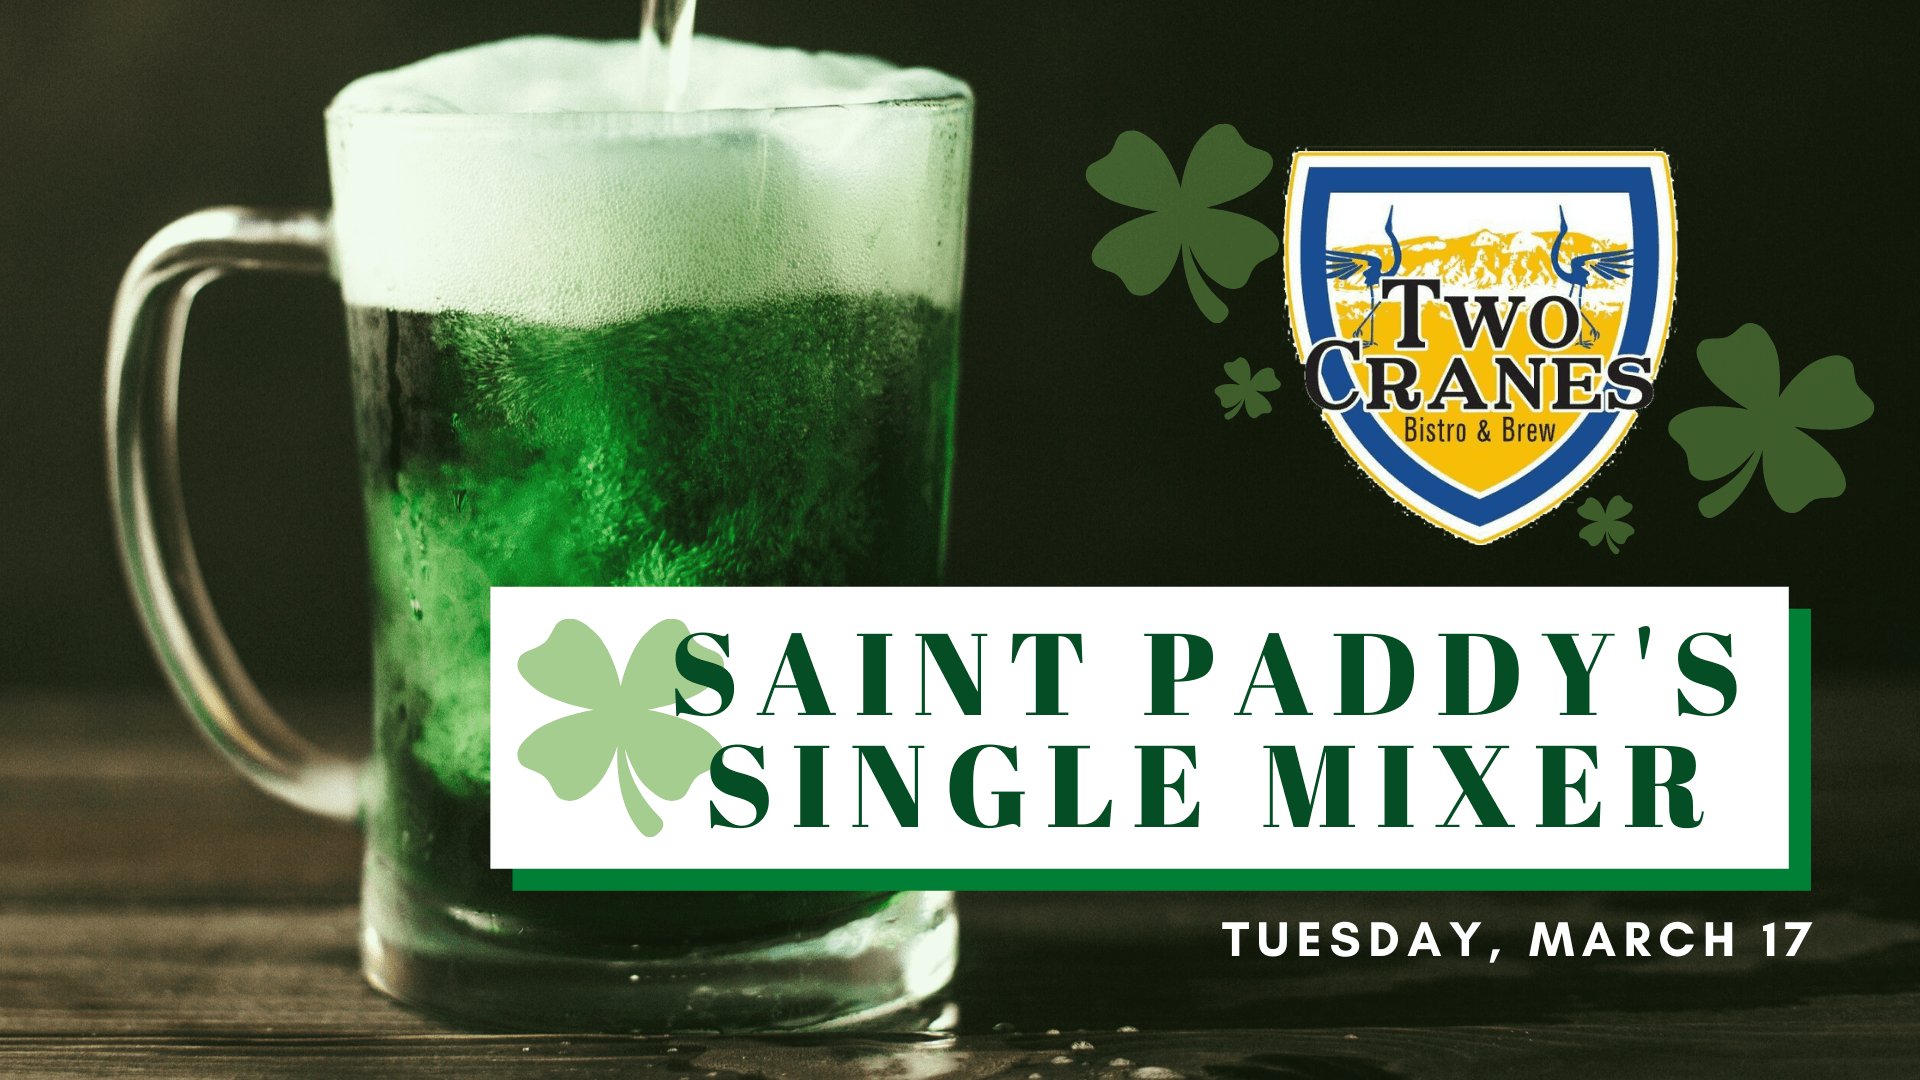 st paddys day single mixer